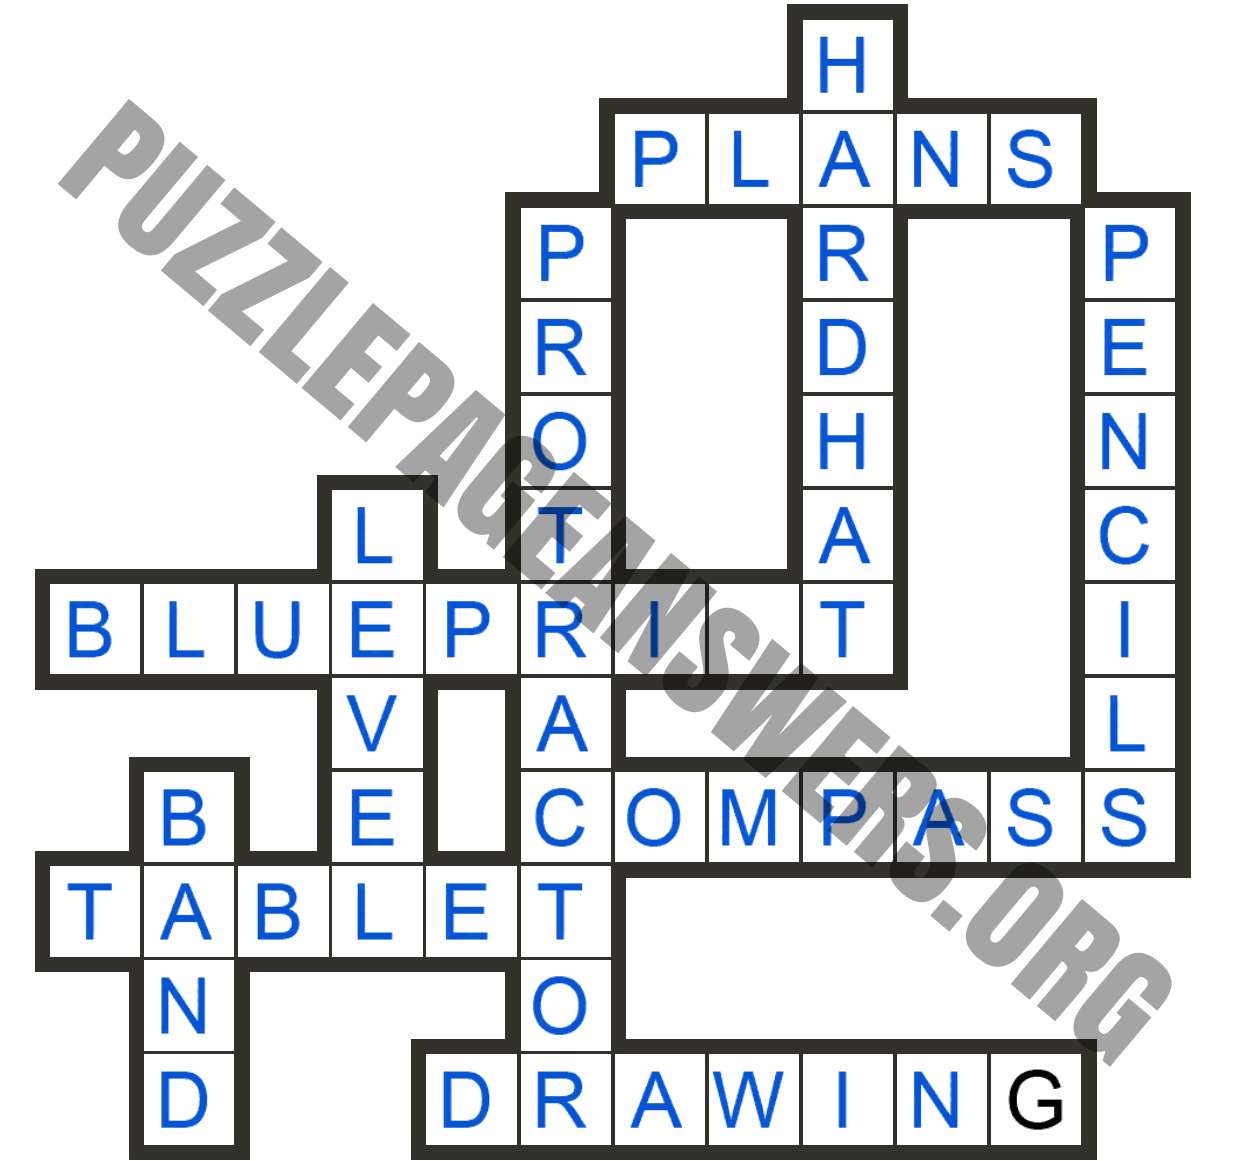 Puzzle Page One Clue August 31 2019 Answers Puzzle Page Answers